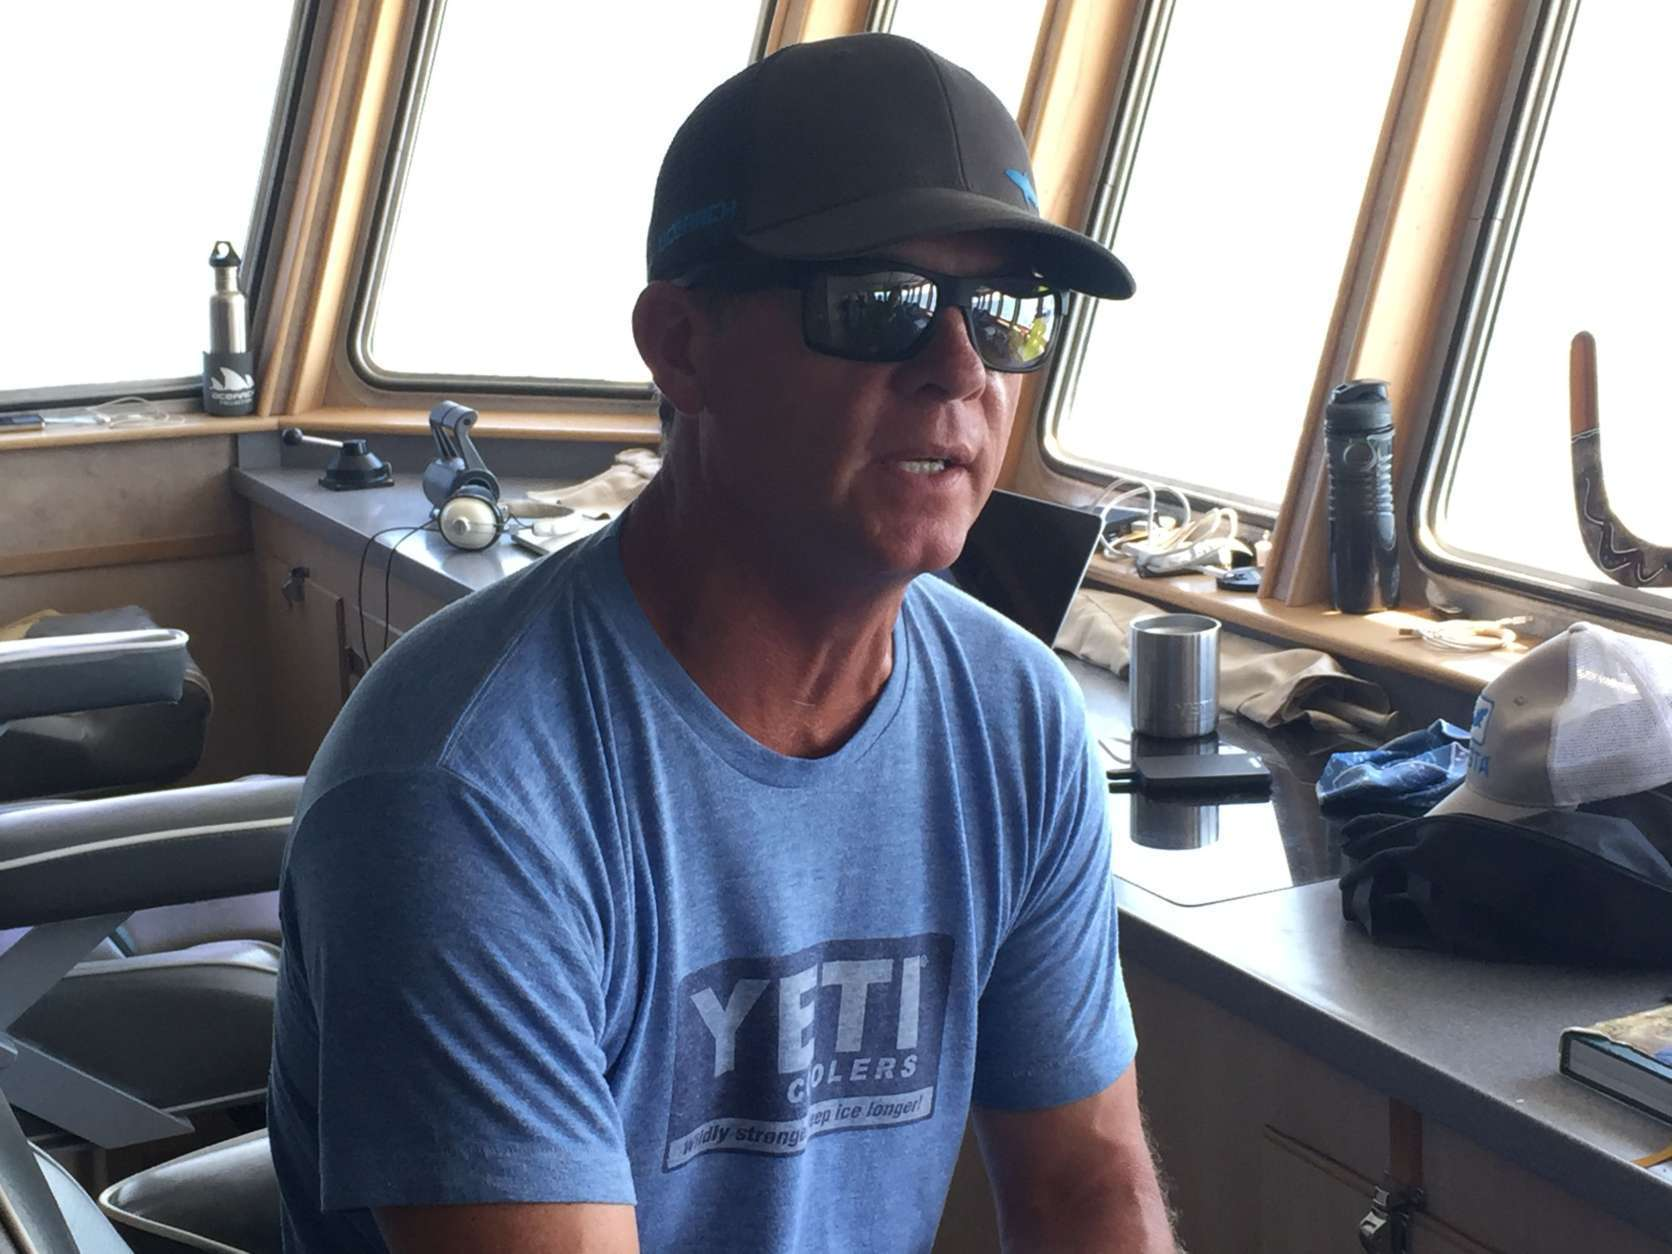 OCEARCH founding chairman and expedition leader Chris Fischer told WTOP about the importance of sharksto the marine food web. (WTOP/Michelle Basch)